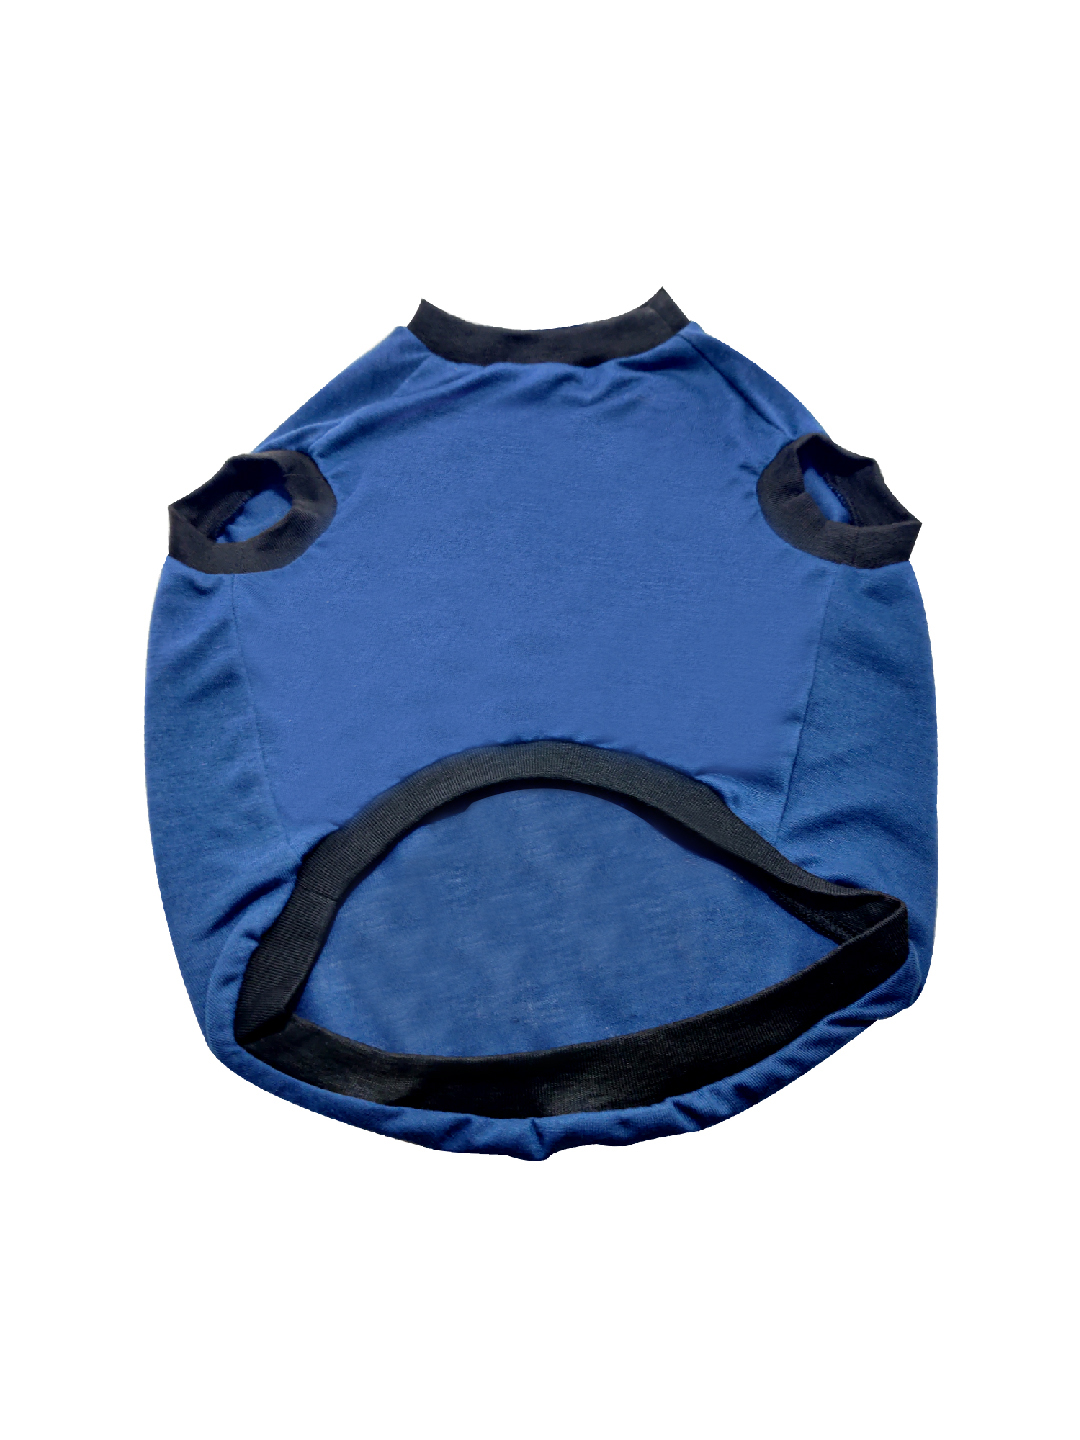 Pets Empire Certified Cookie Tester Summer Pet T-Shirt, Dogs Short Sleeve Colorful Letters Printed Breathable Vest Costumes. (BLUE, 10 INCH)